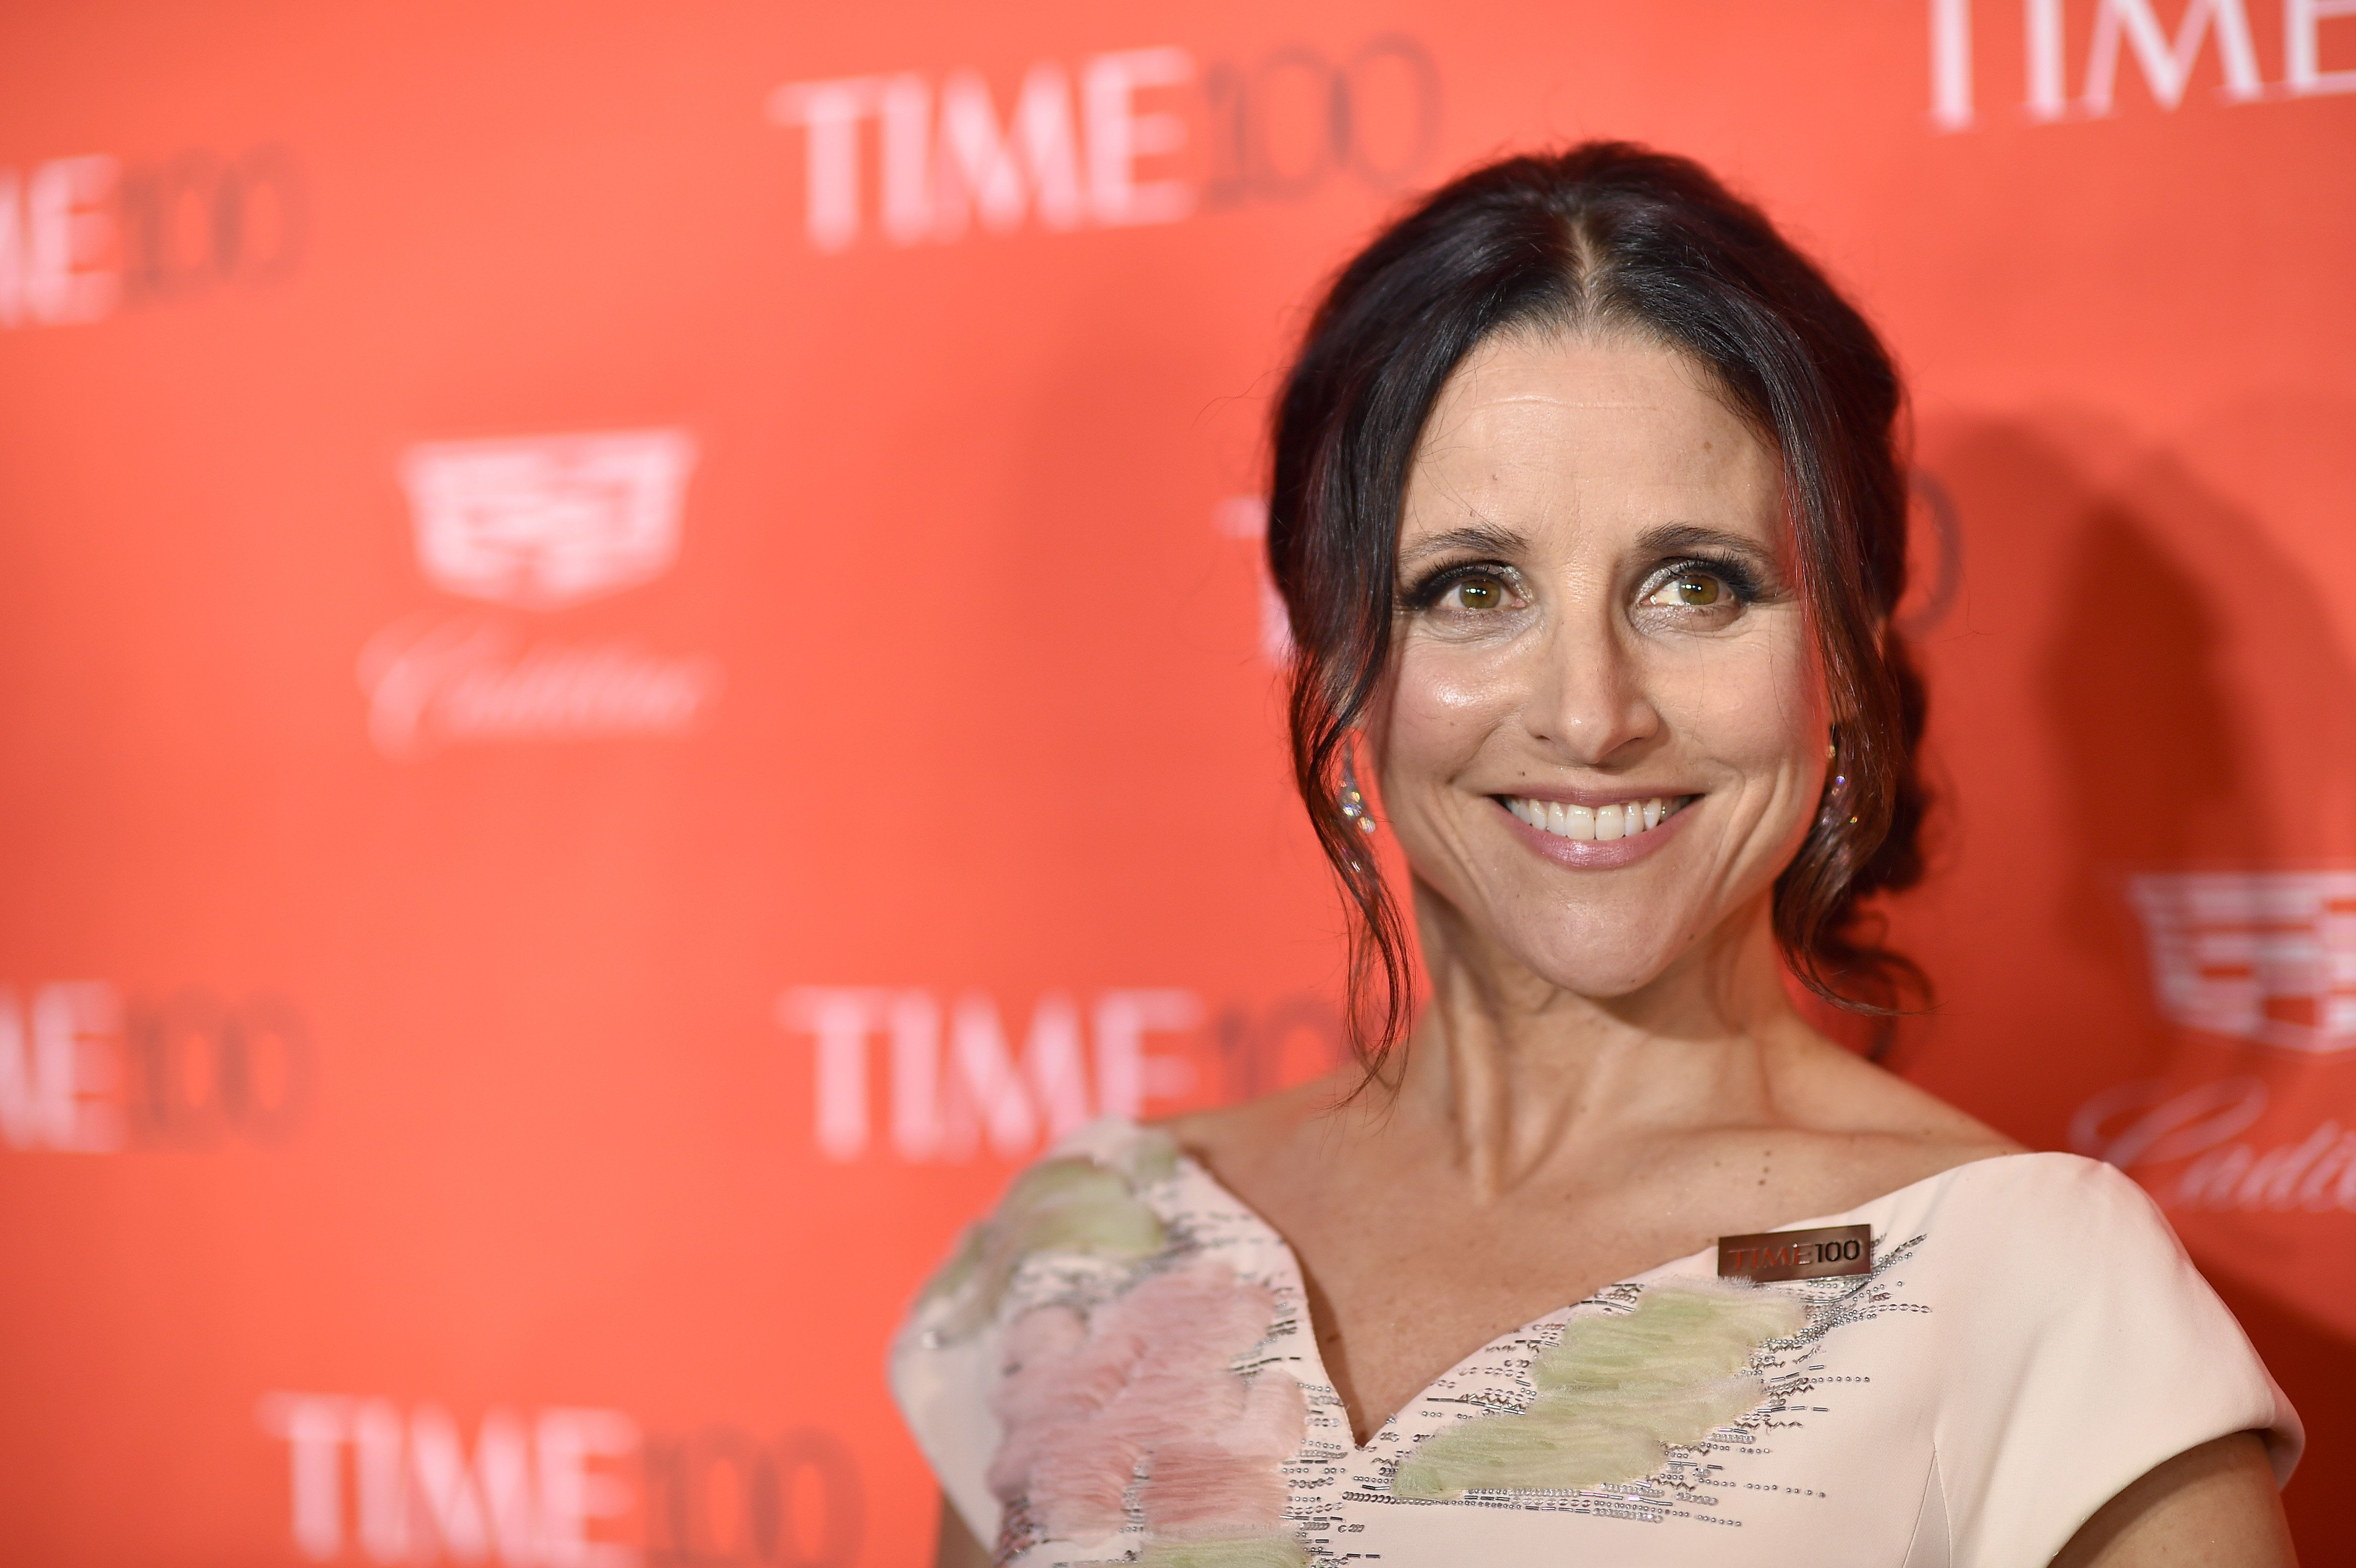 NEW YORK, NY - APRIL 26:  Actress Julia Louis-Dreyfus attends 2016 Time 100 Gala, Time's Most Influential People In The World red carpet at Jazz At Lincoln Center at the Times Warner Center on April 26, 2016 in New York City.  (Photo by Dimitrios Kambouris/Getty Images for Time)